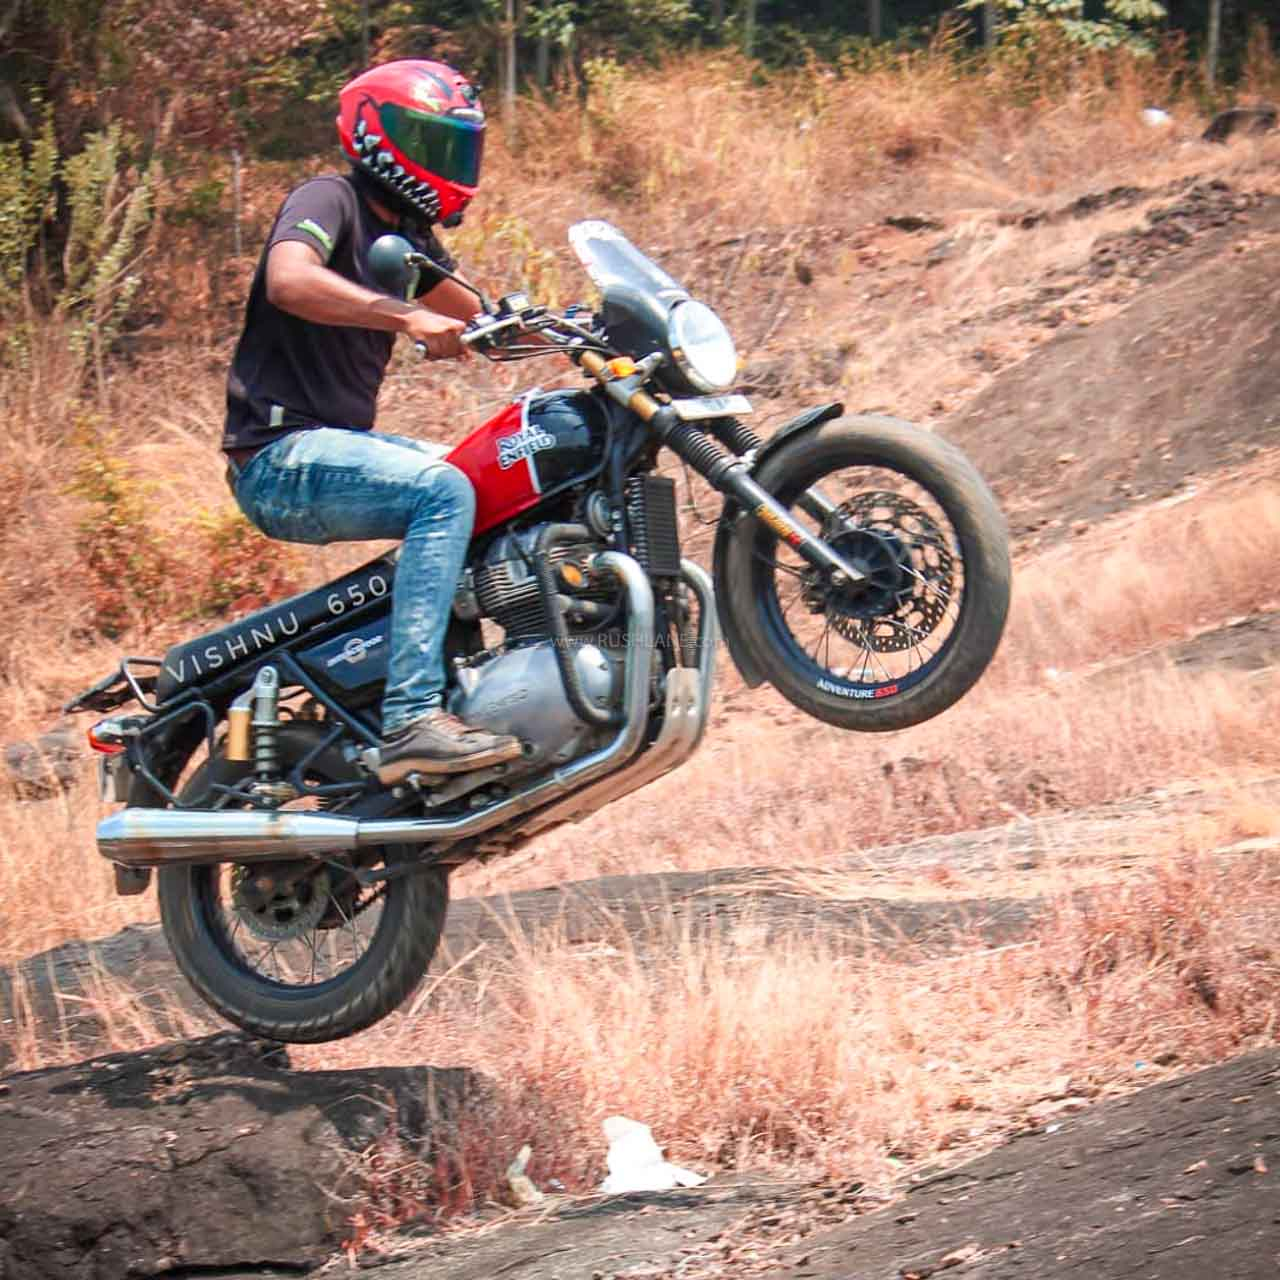 Royal Enfield Interceptor 650 withstands abuse – Owner shares stunt video